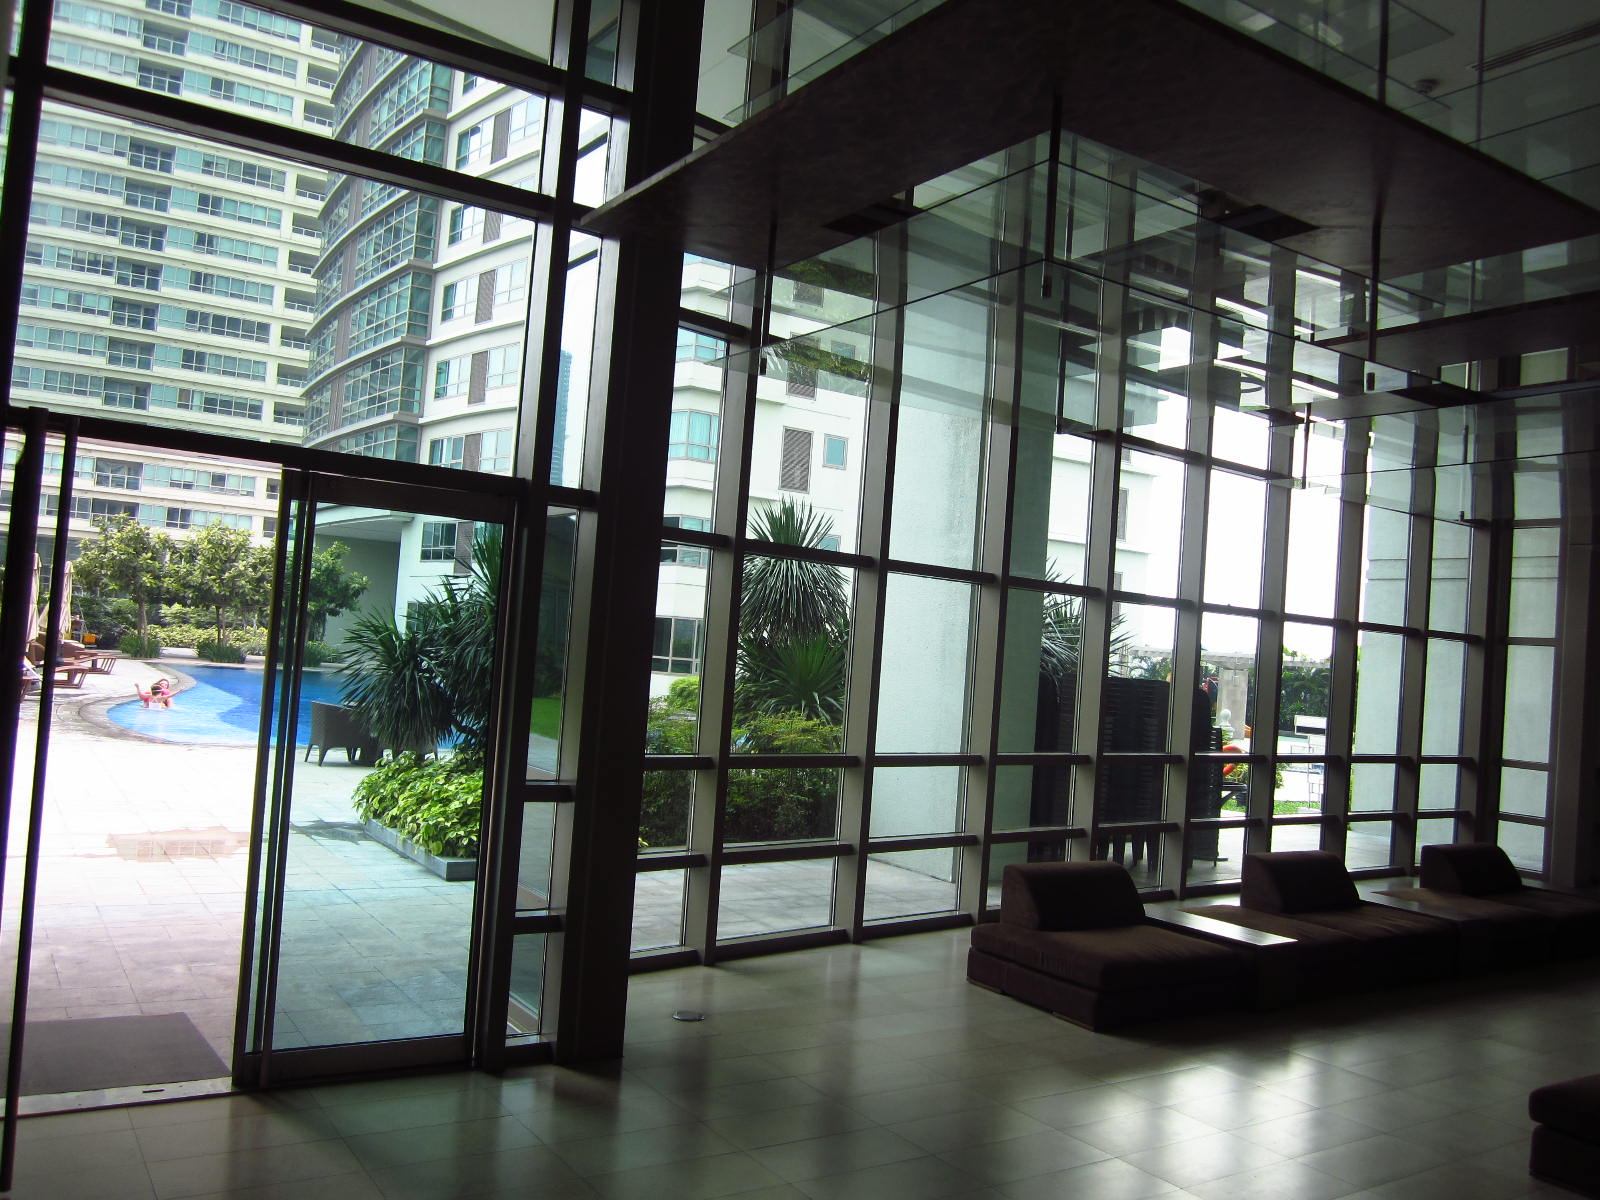 FOR RENT / LEASE: Apartment / Condo / Townhouse Manila Metropolitan Area > Makati 14